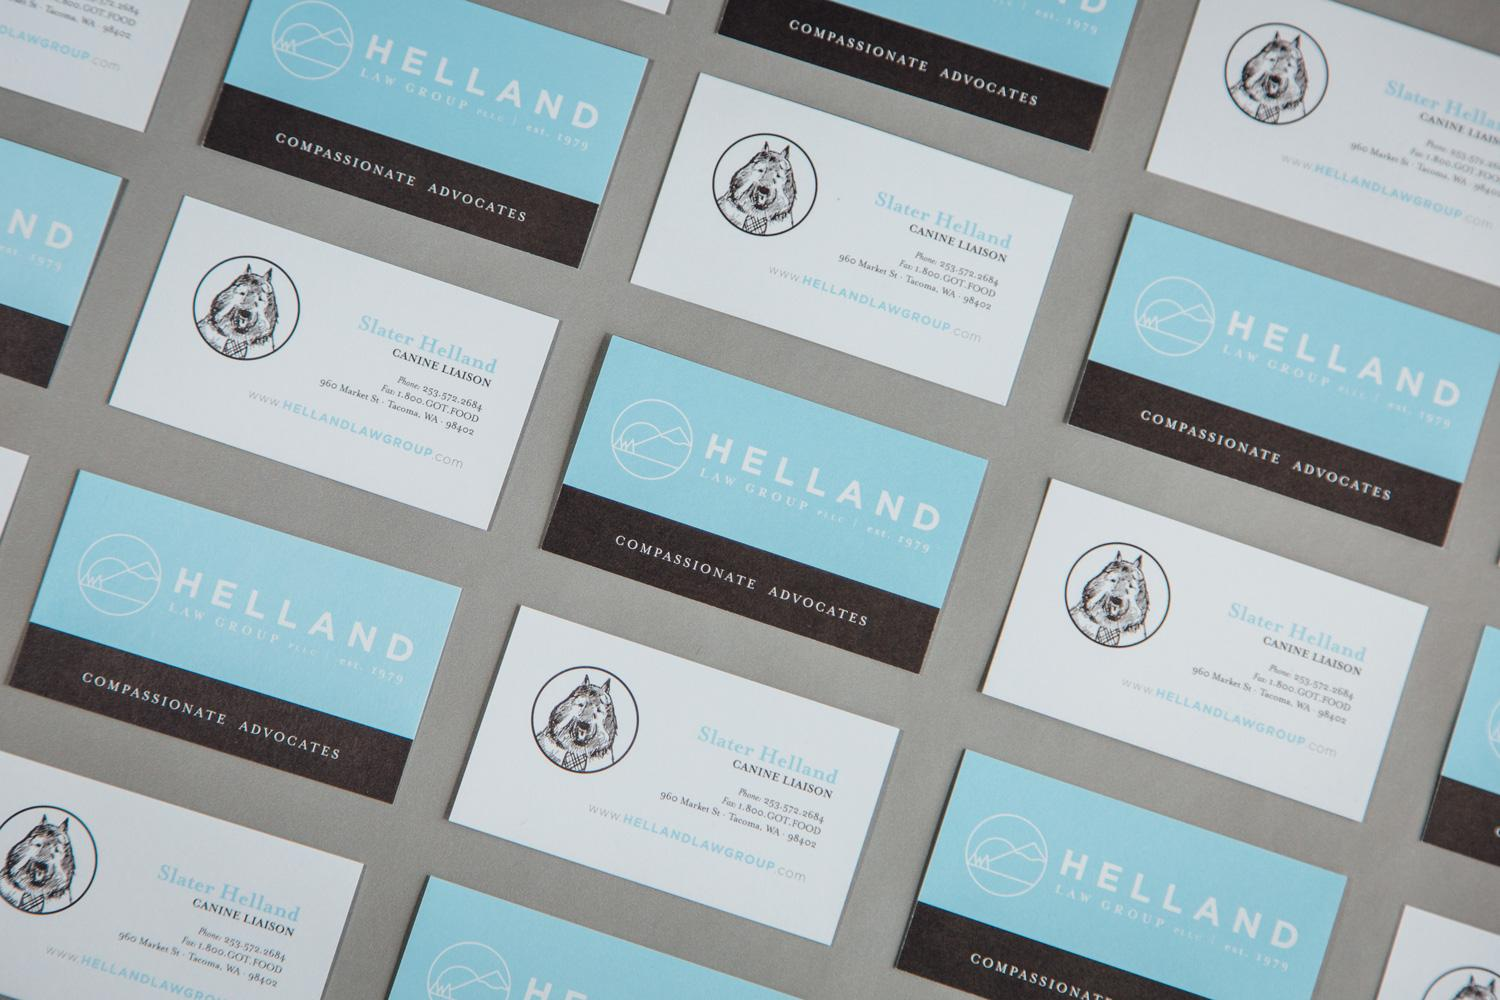 Helland Business cards